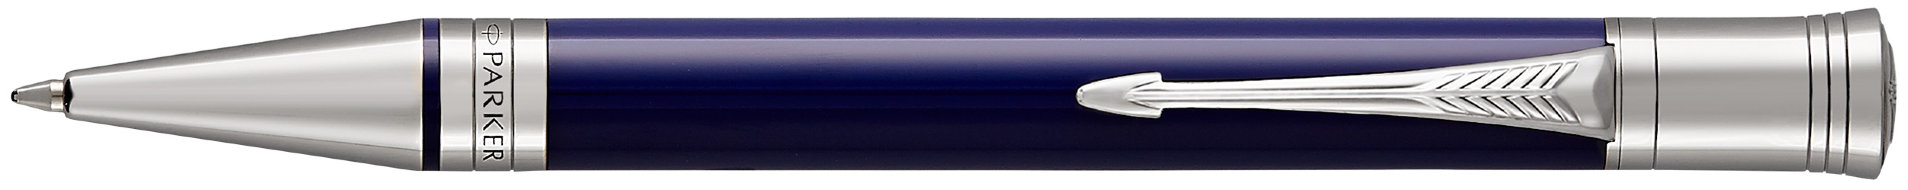 Шариковая ручка Parker Duofold K74 Blue/Black CT